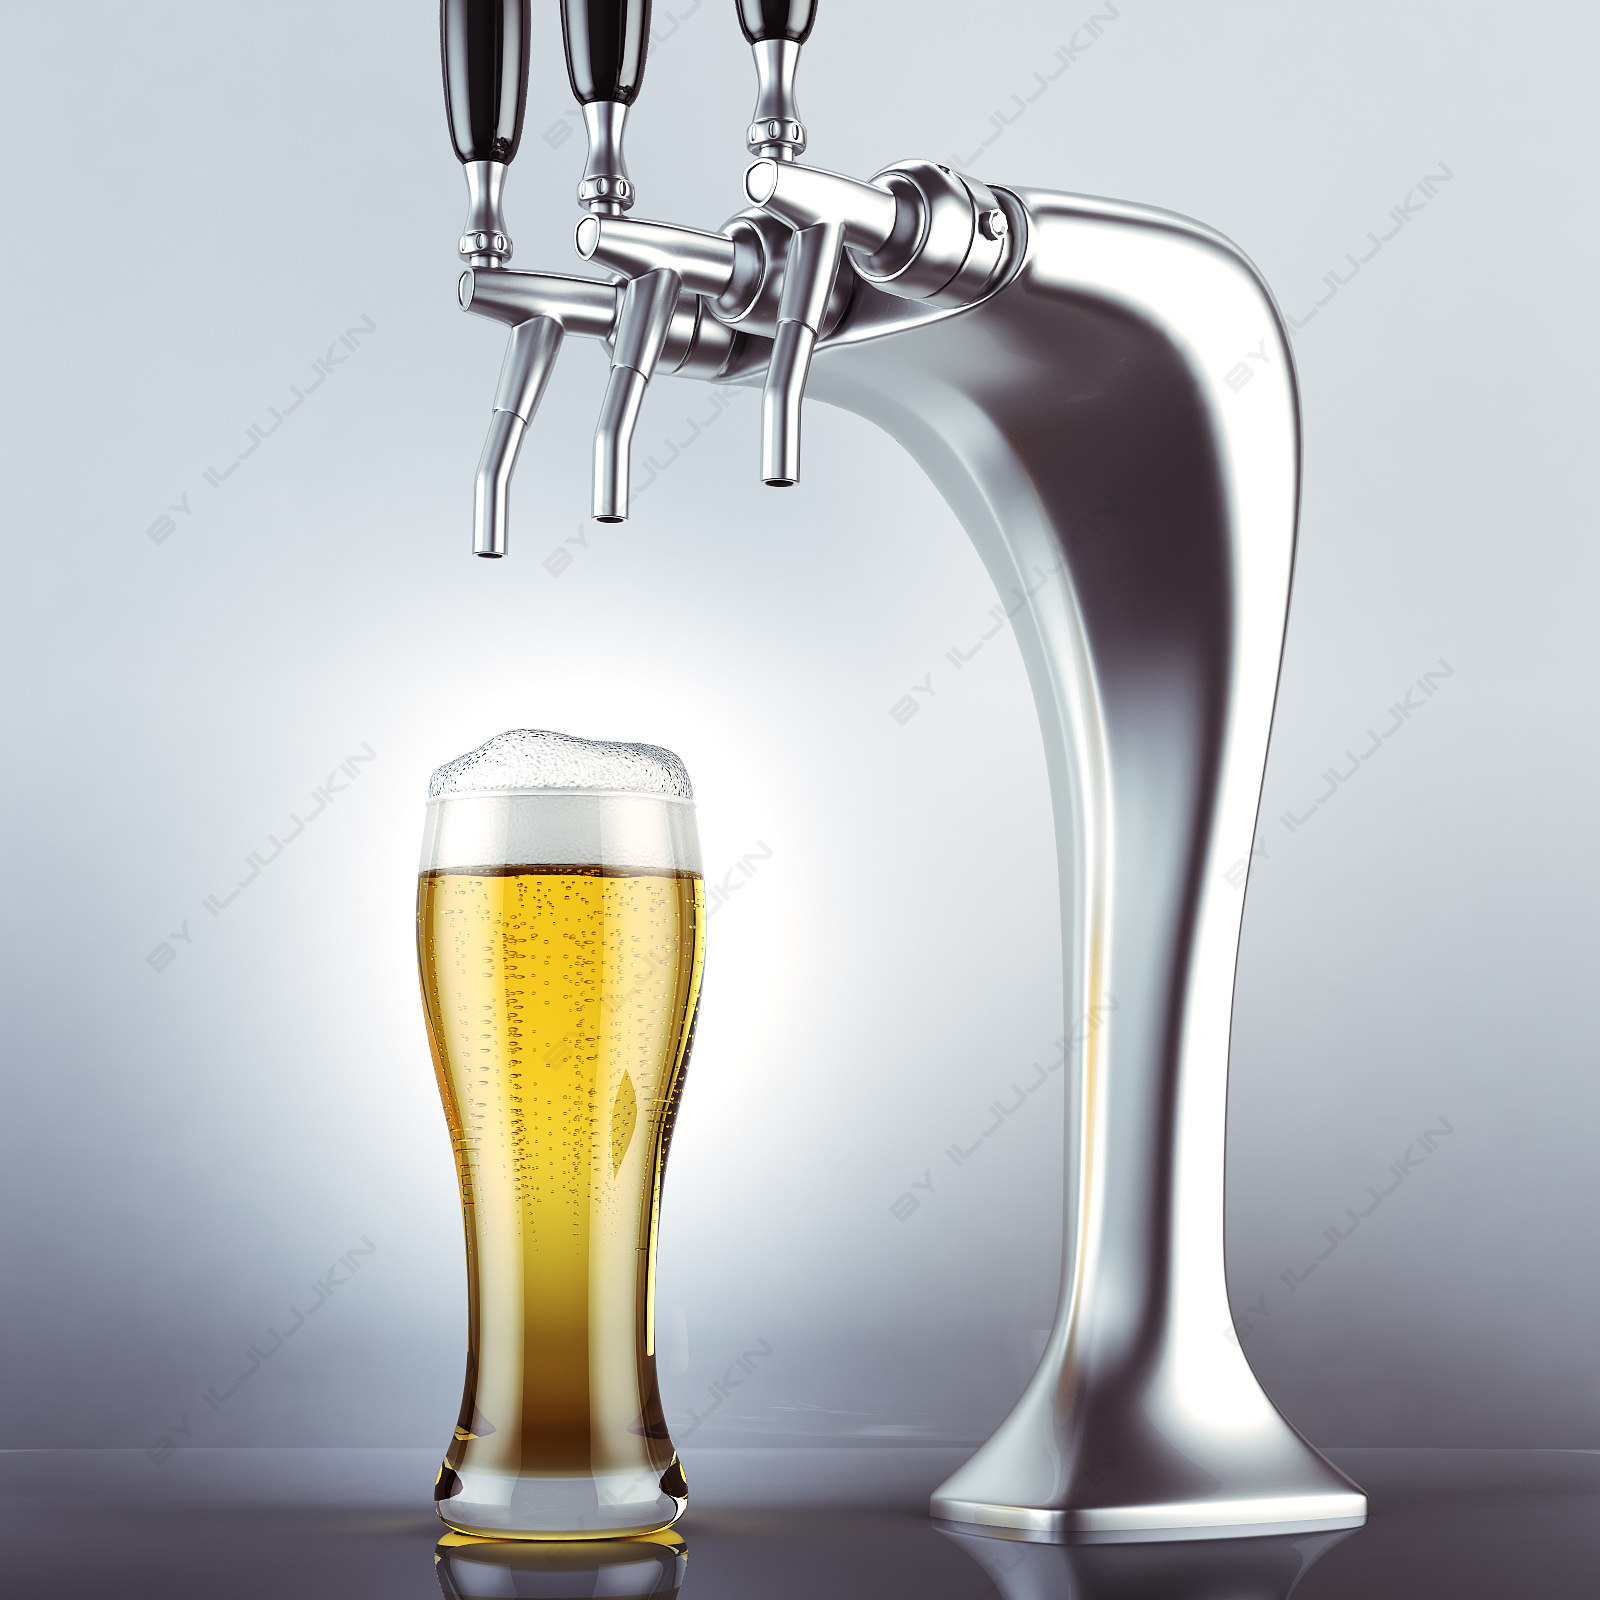 Beer_tower_glass_01.jpg